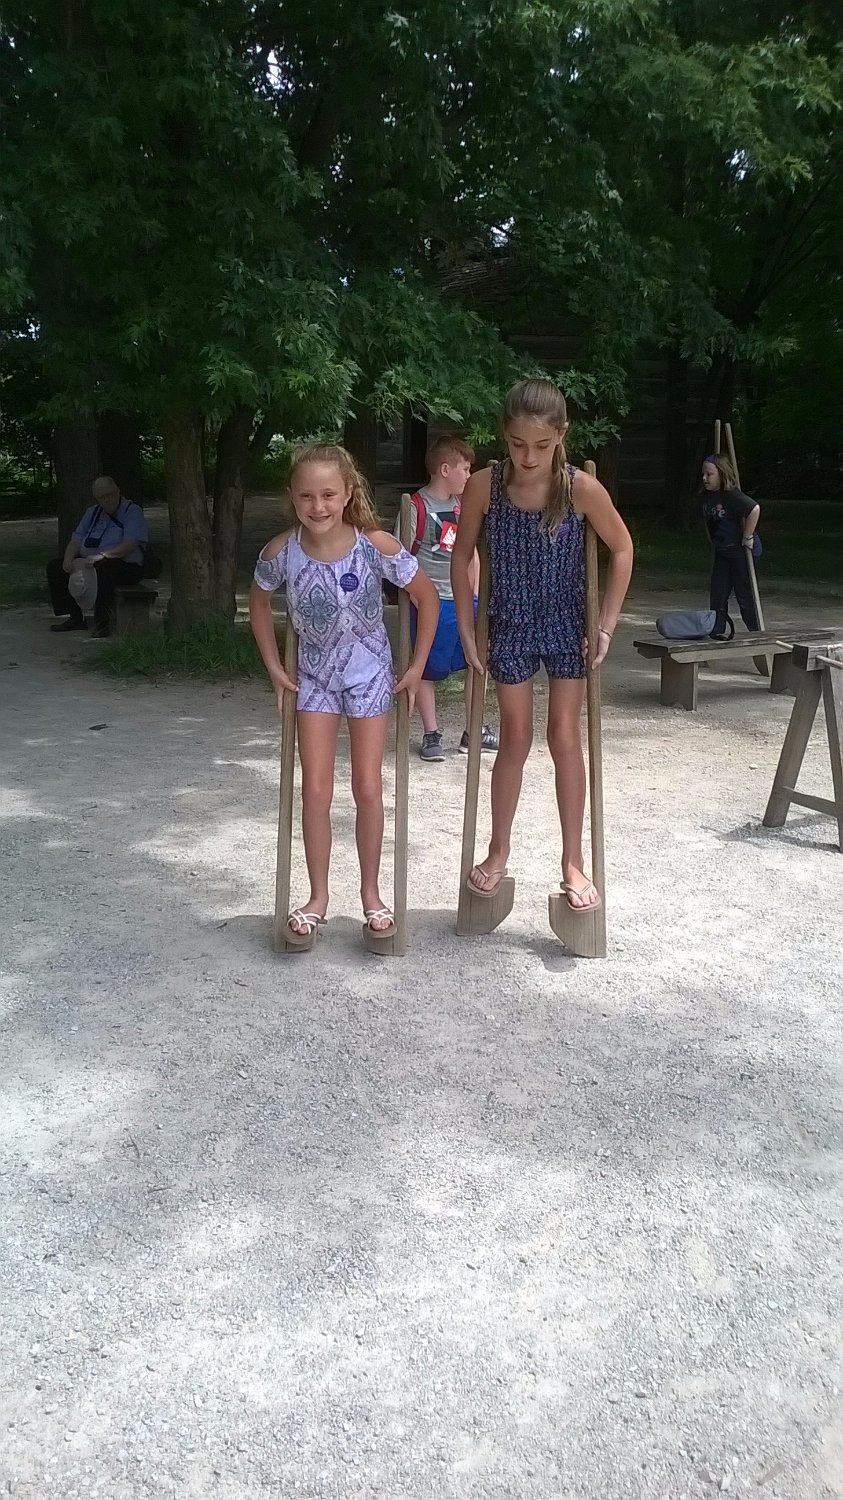 Trying out stilts in Prairietown